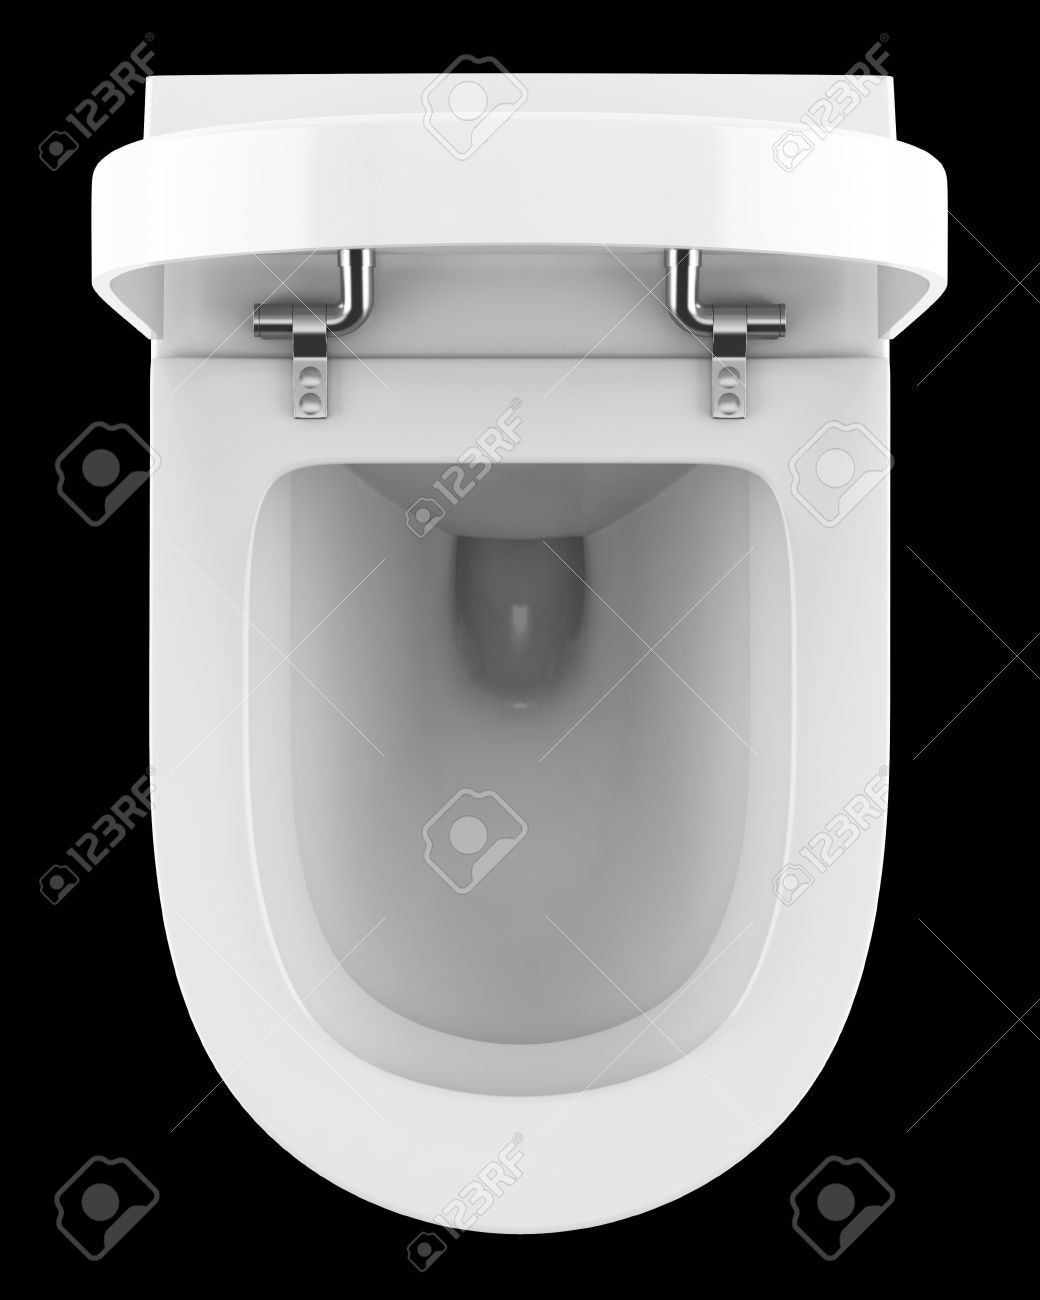 Top View Of Modern Toilet Bowl Isolated On Black Background Stock